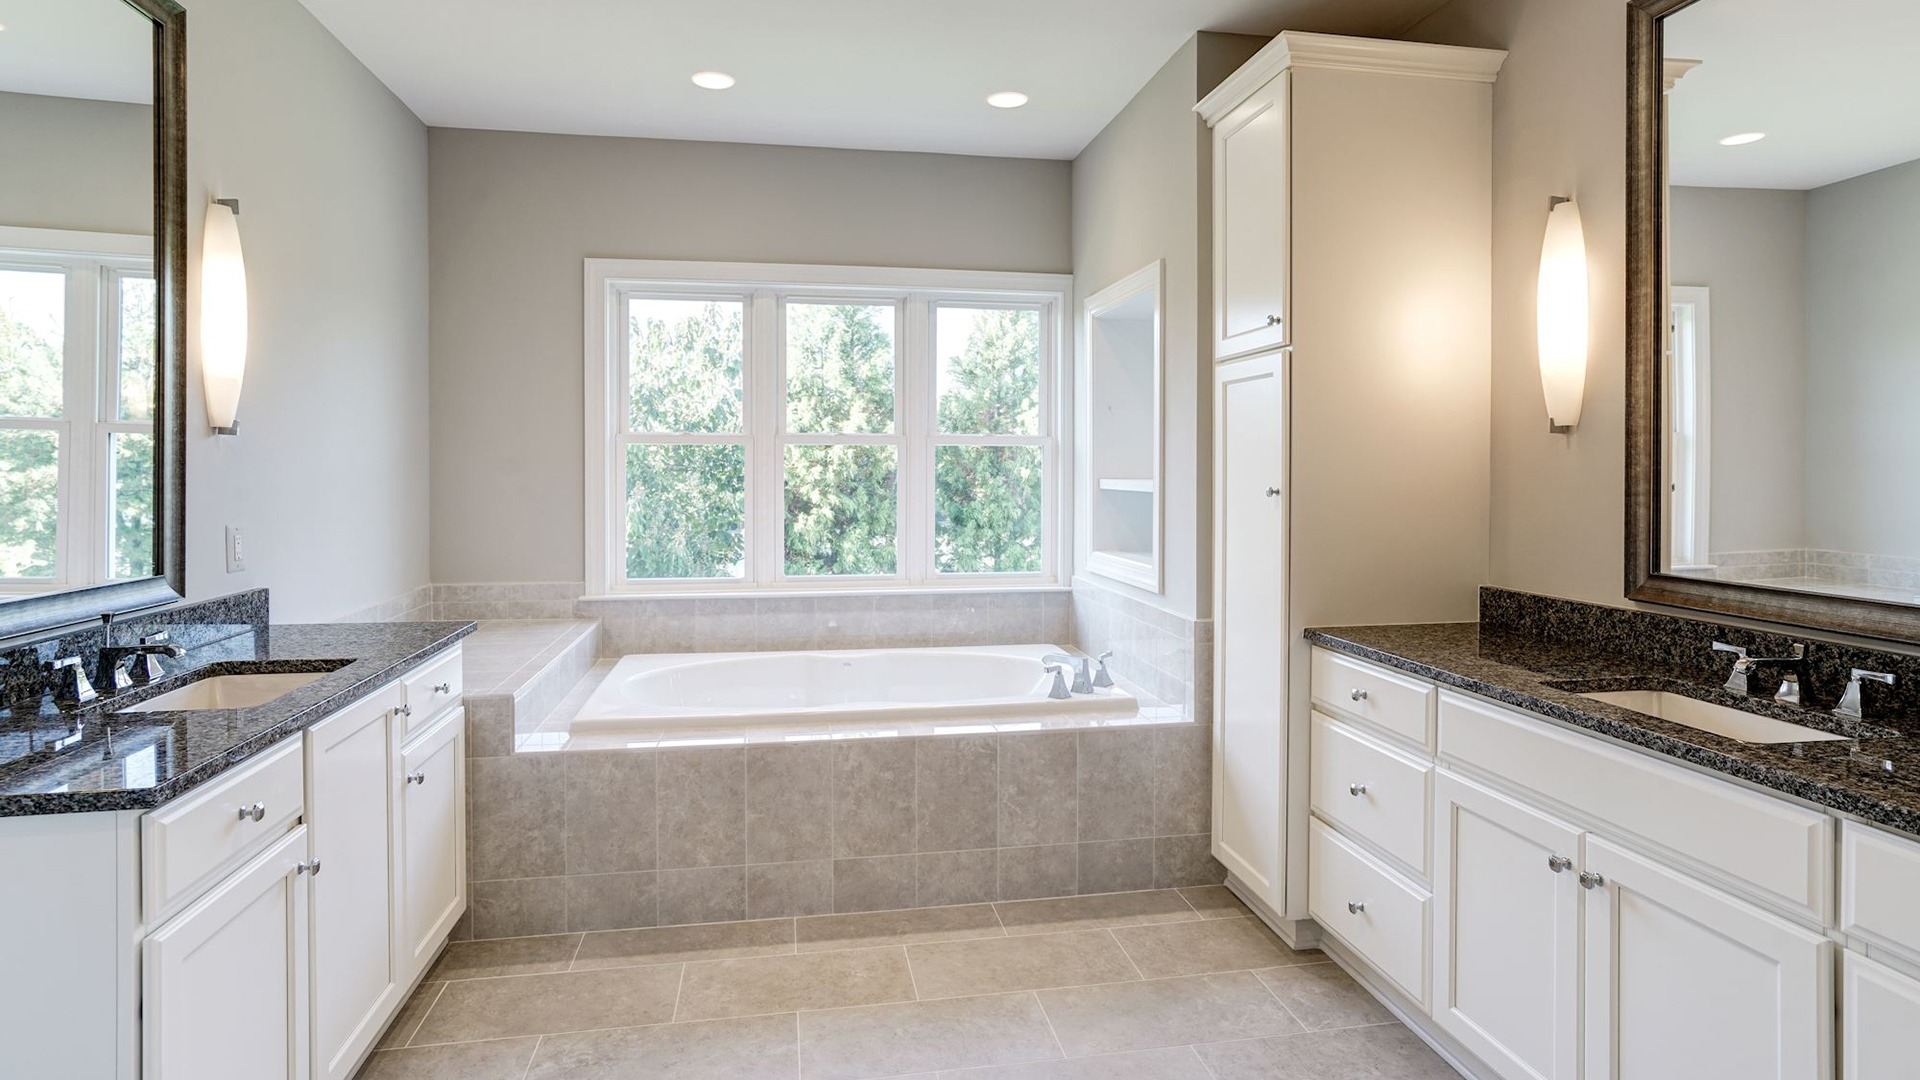 The Owner's Bath in the Grayson on Fallsgate Homesite 4. Some optional features shown.